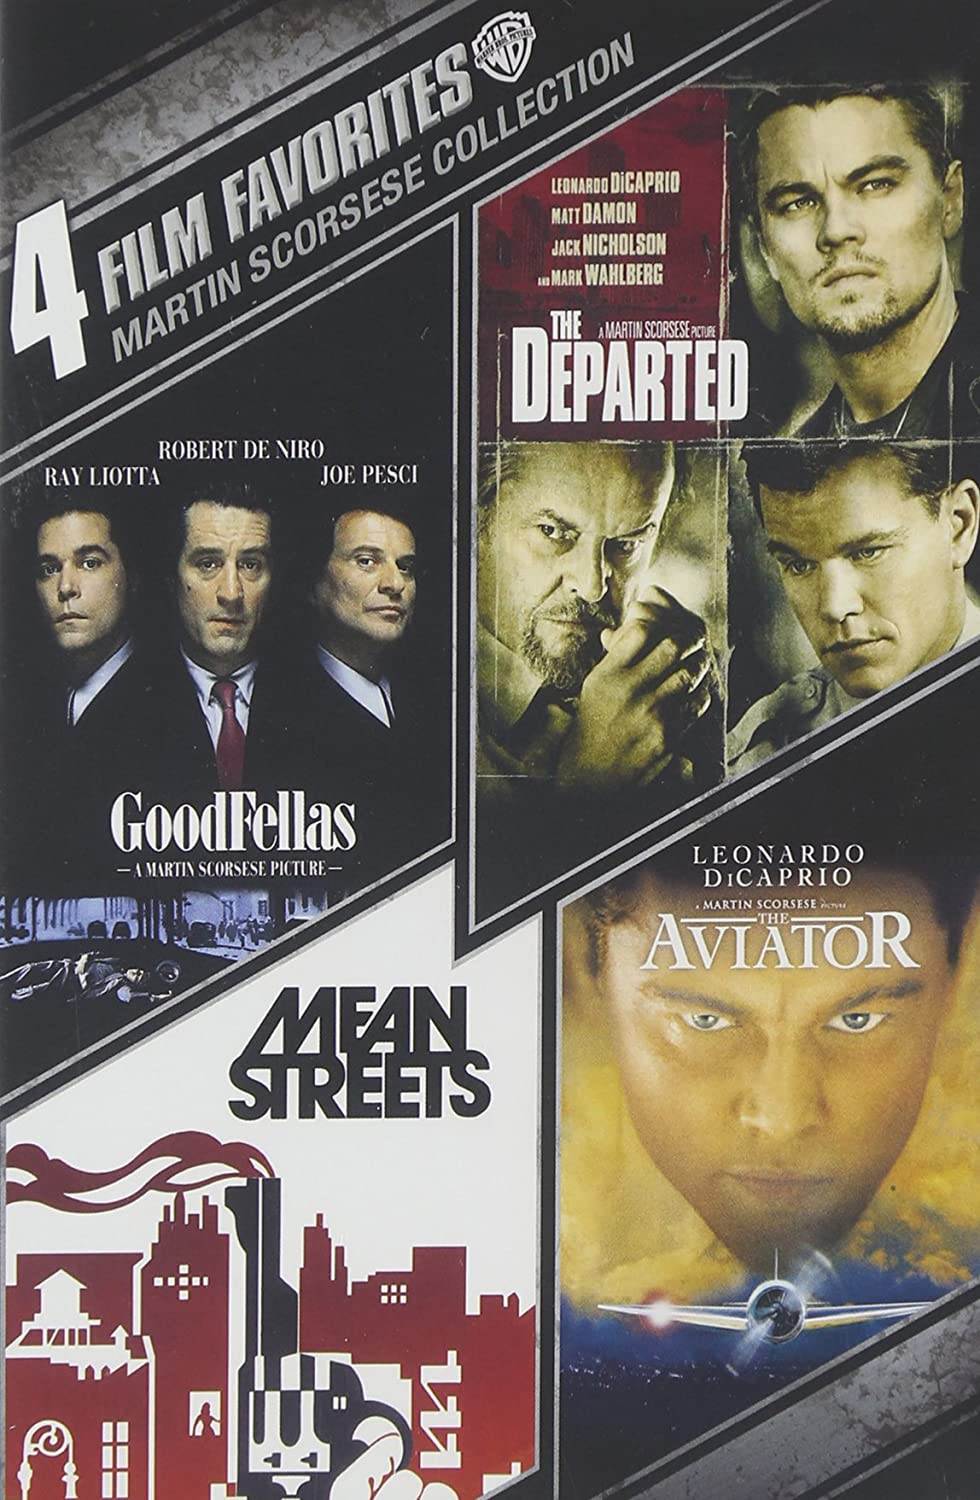 amazoncom 4 film favorites martin scorsese goodfellas the departed the aviator mean streets special edition robert de niro ray liotta